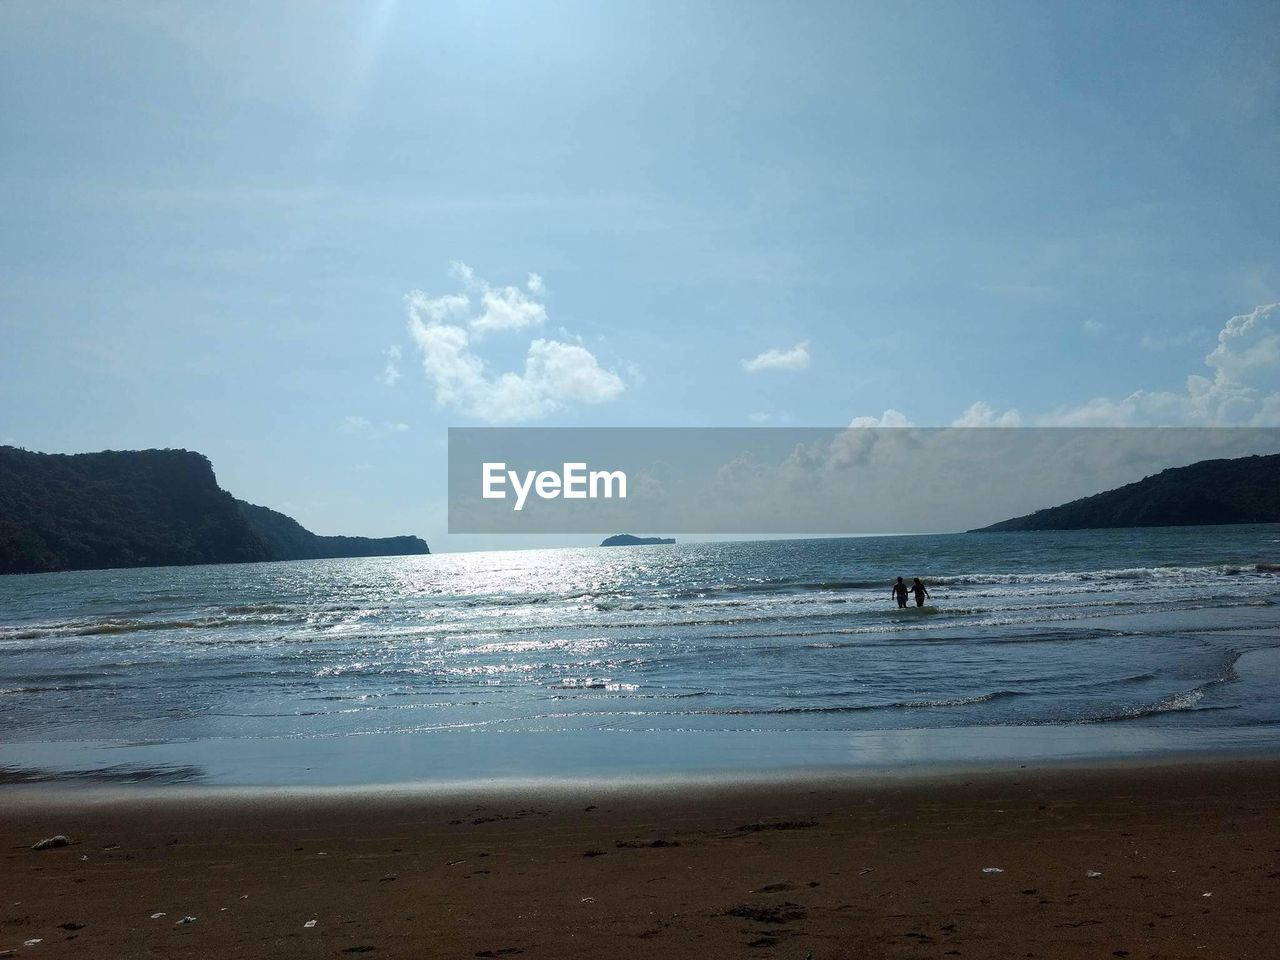 sea, water, beach, nature, shore, sky, beauty in nature, horizon over water, sand, scenics, tranquility, day, outdoors, wave, no people